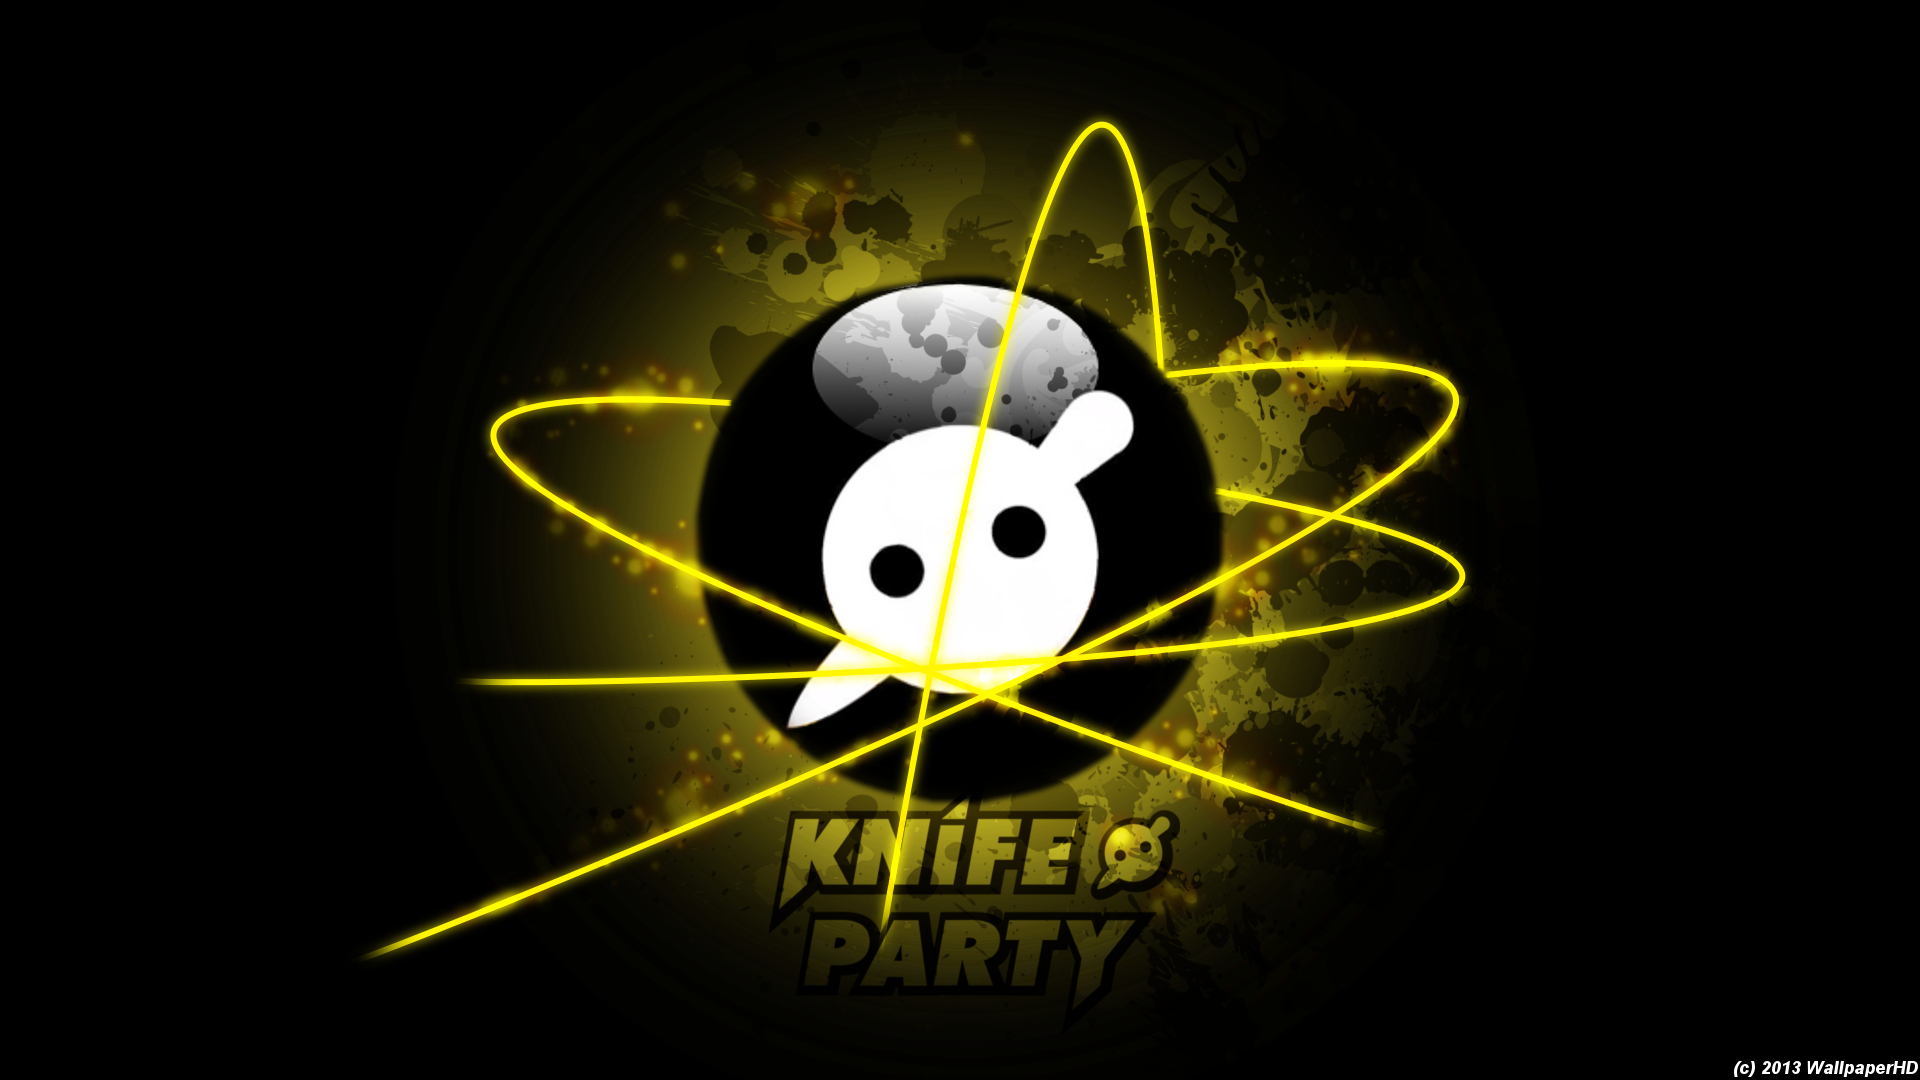 Knife-Party-Wallpaper1 by WallpaperHD by WallpaperHD on ...